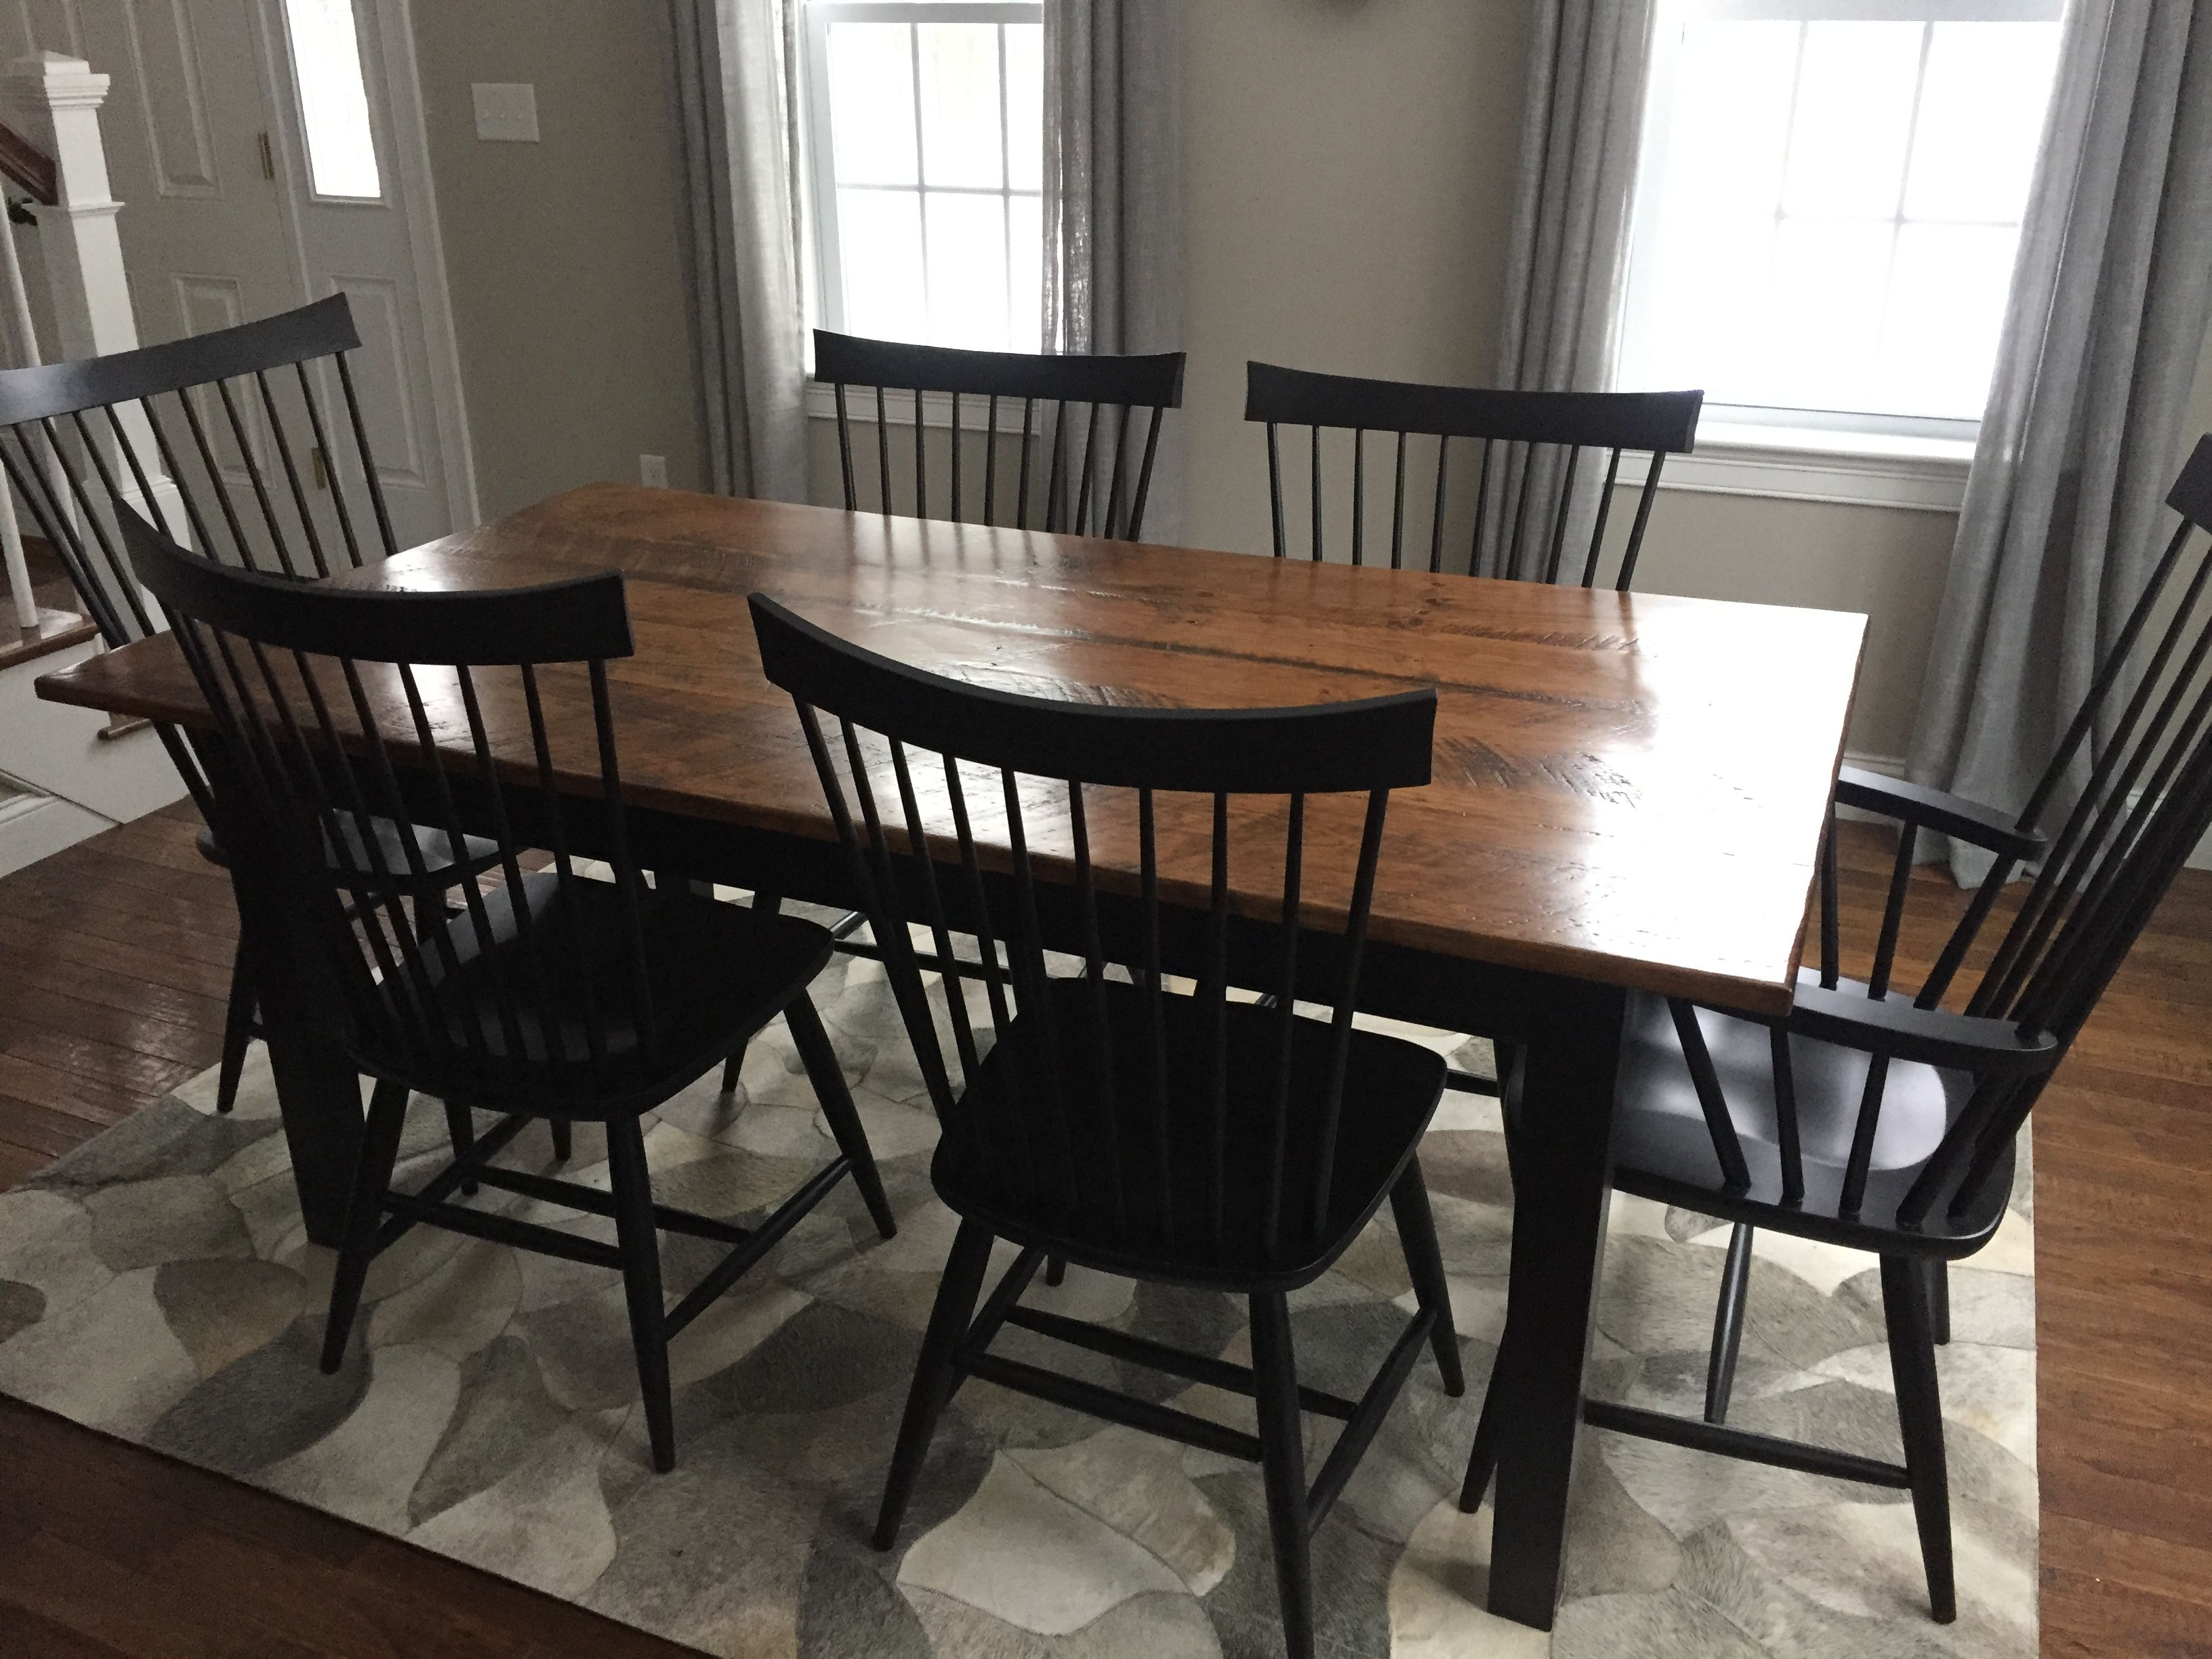 Shaker Dining Tables | CustomMade.com